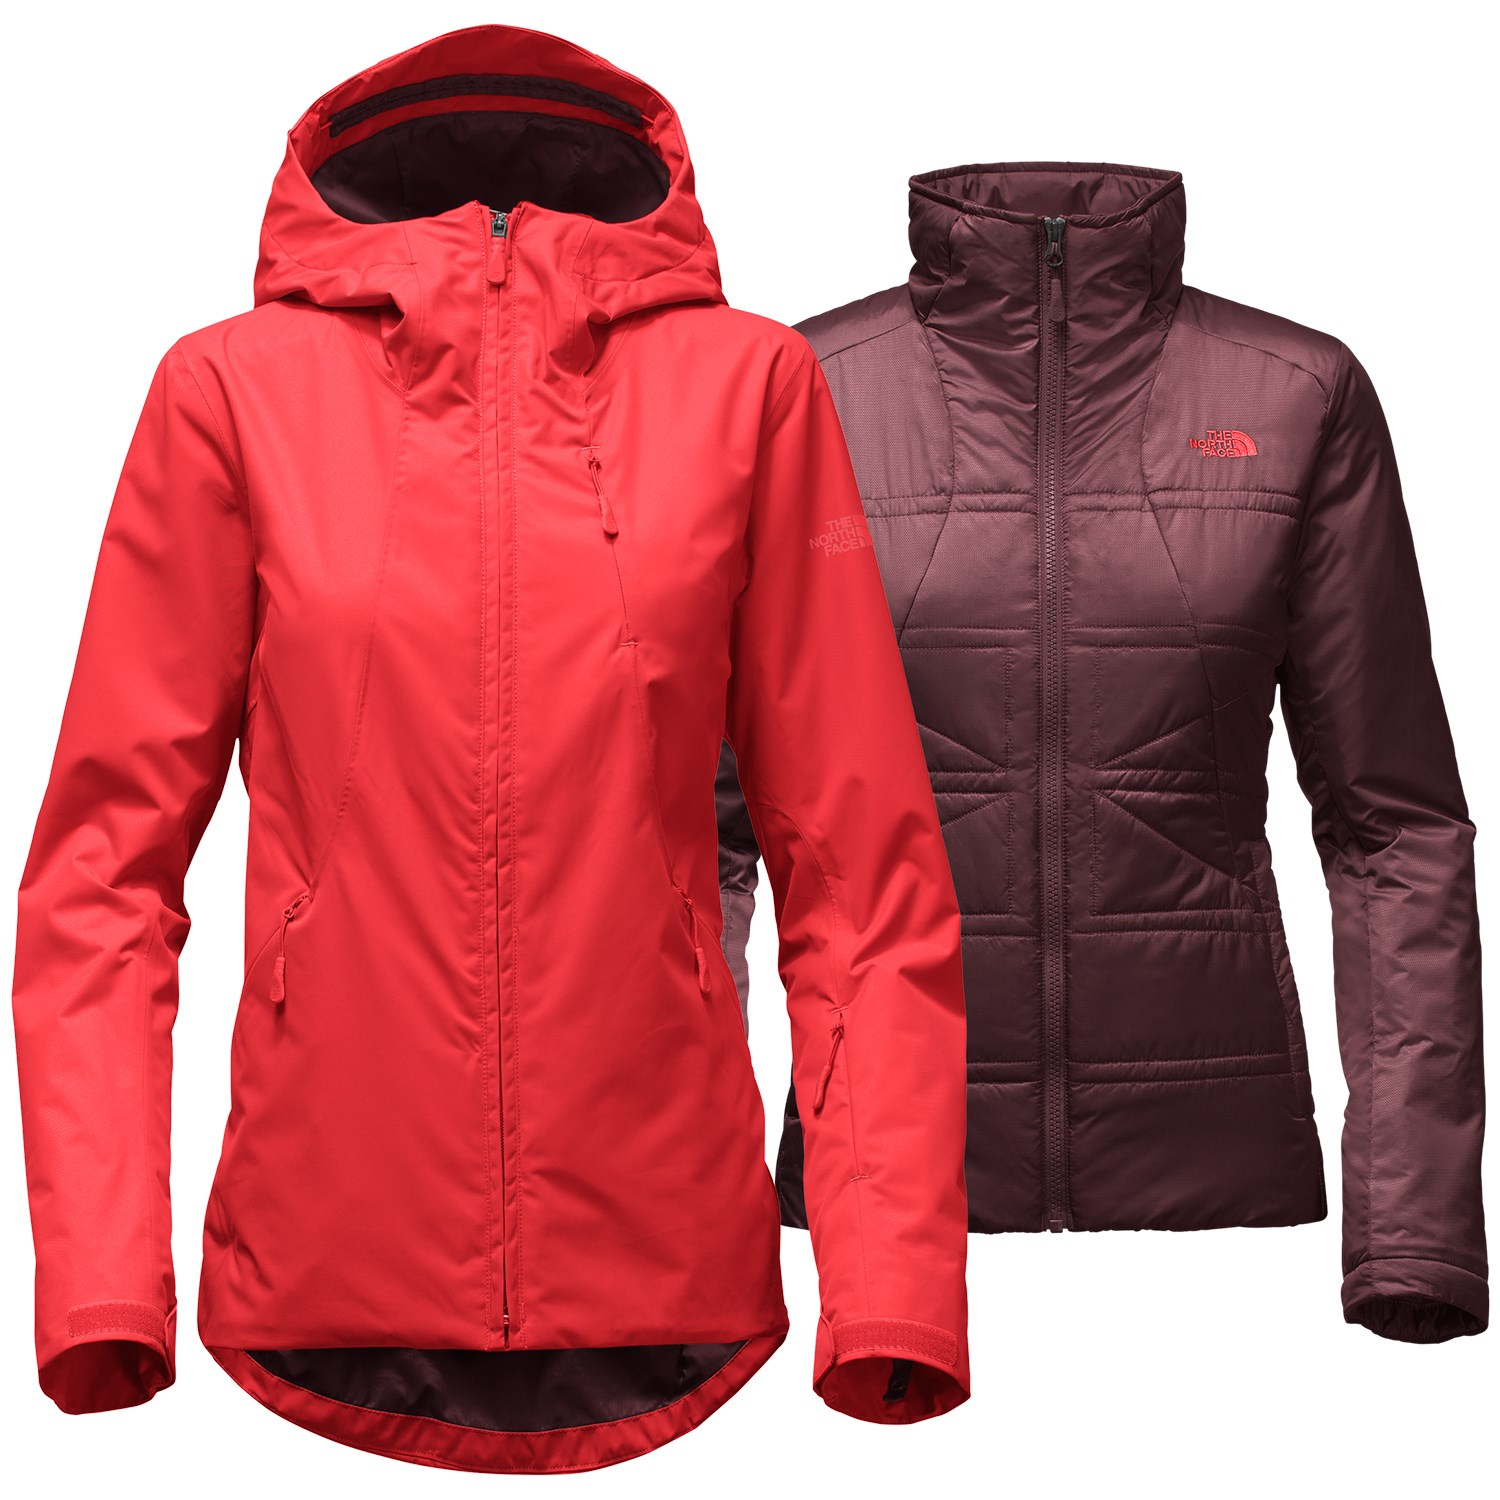 a67222323 The North Face Clementine Triclimate Jacket - Women's | evo